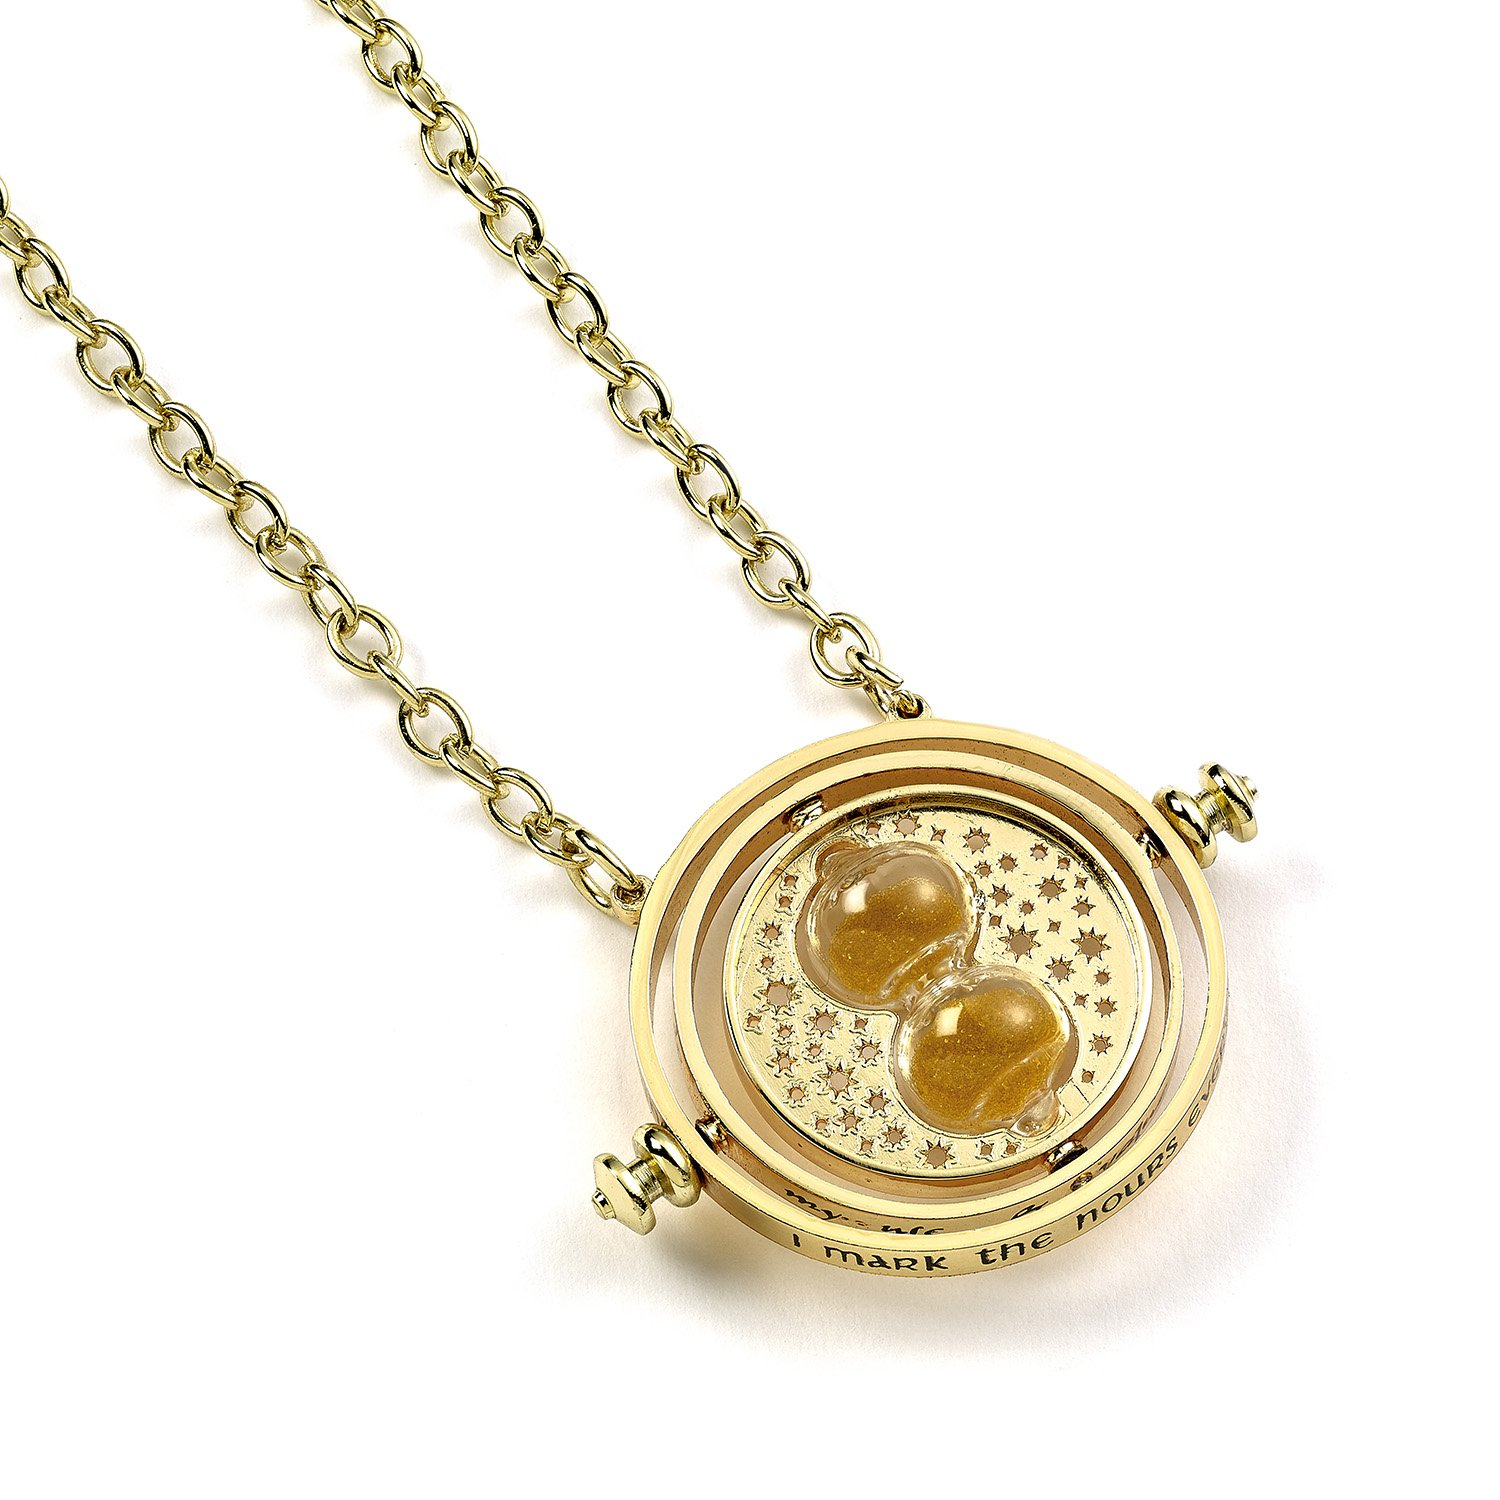 Official Harry Potter Jewelry Spinning Time Turner Necklace by HARRY POTTER